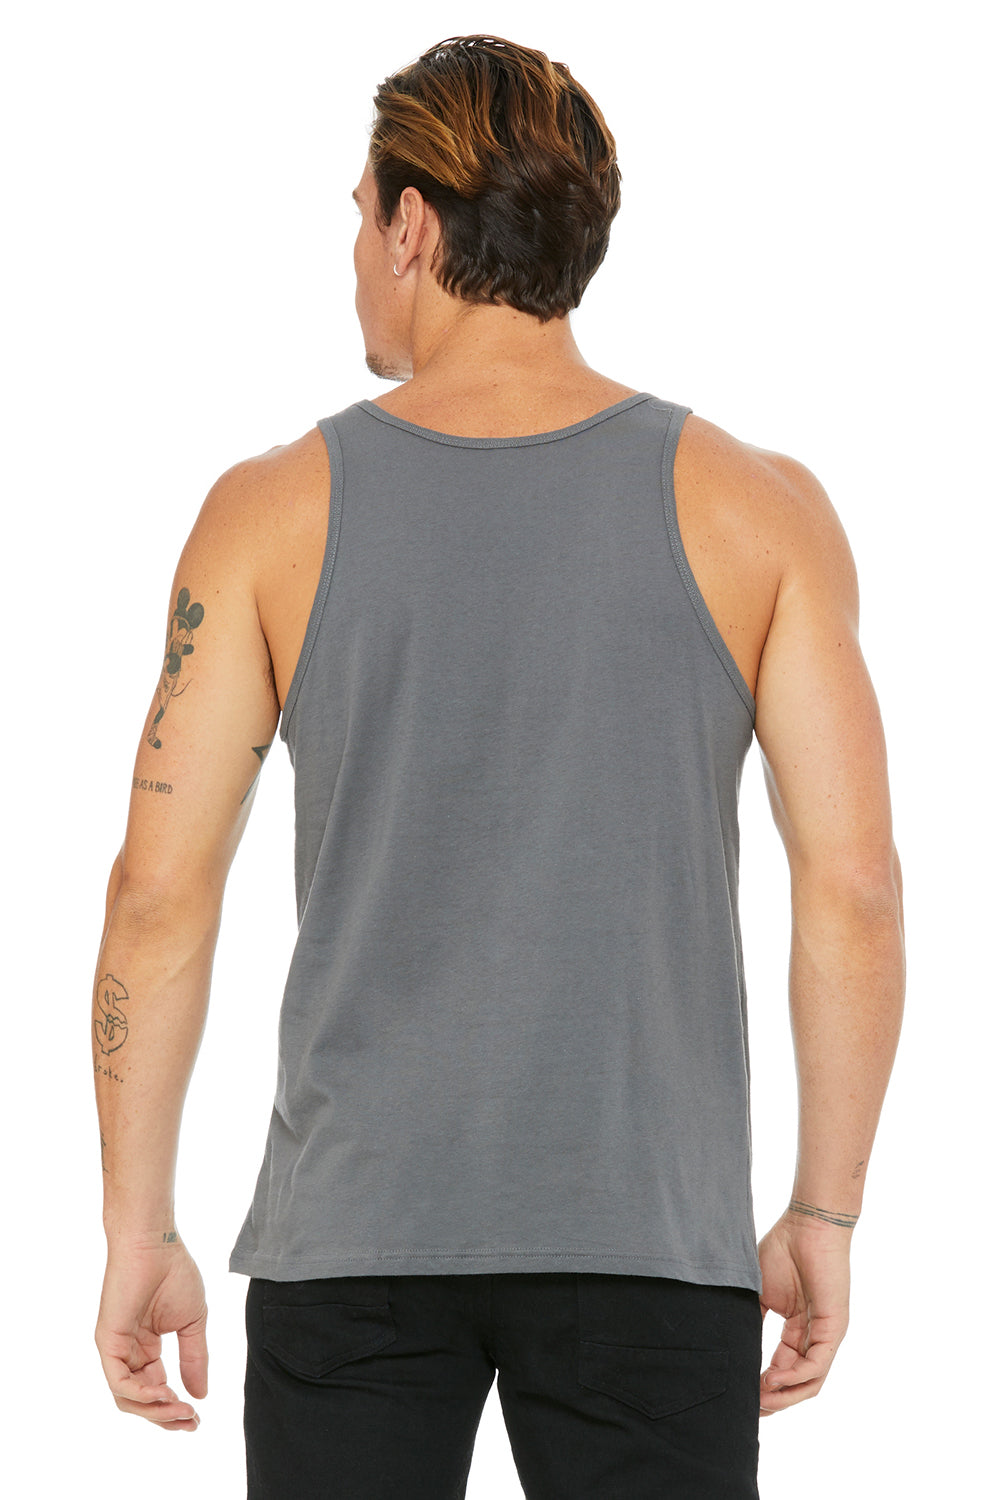 Bella + Canvas 3480 Mens Jersey Tank Top Asphalt Grey Back